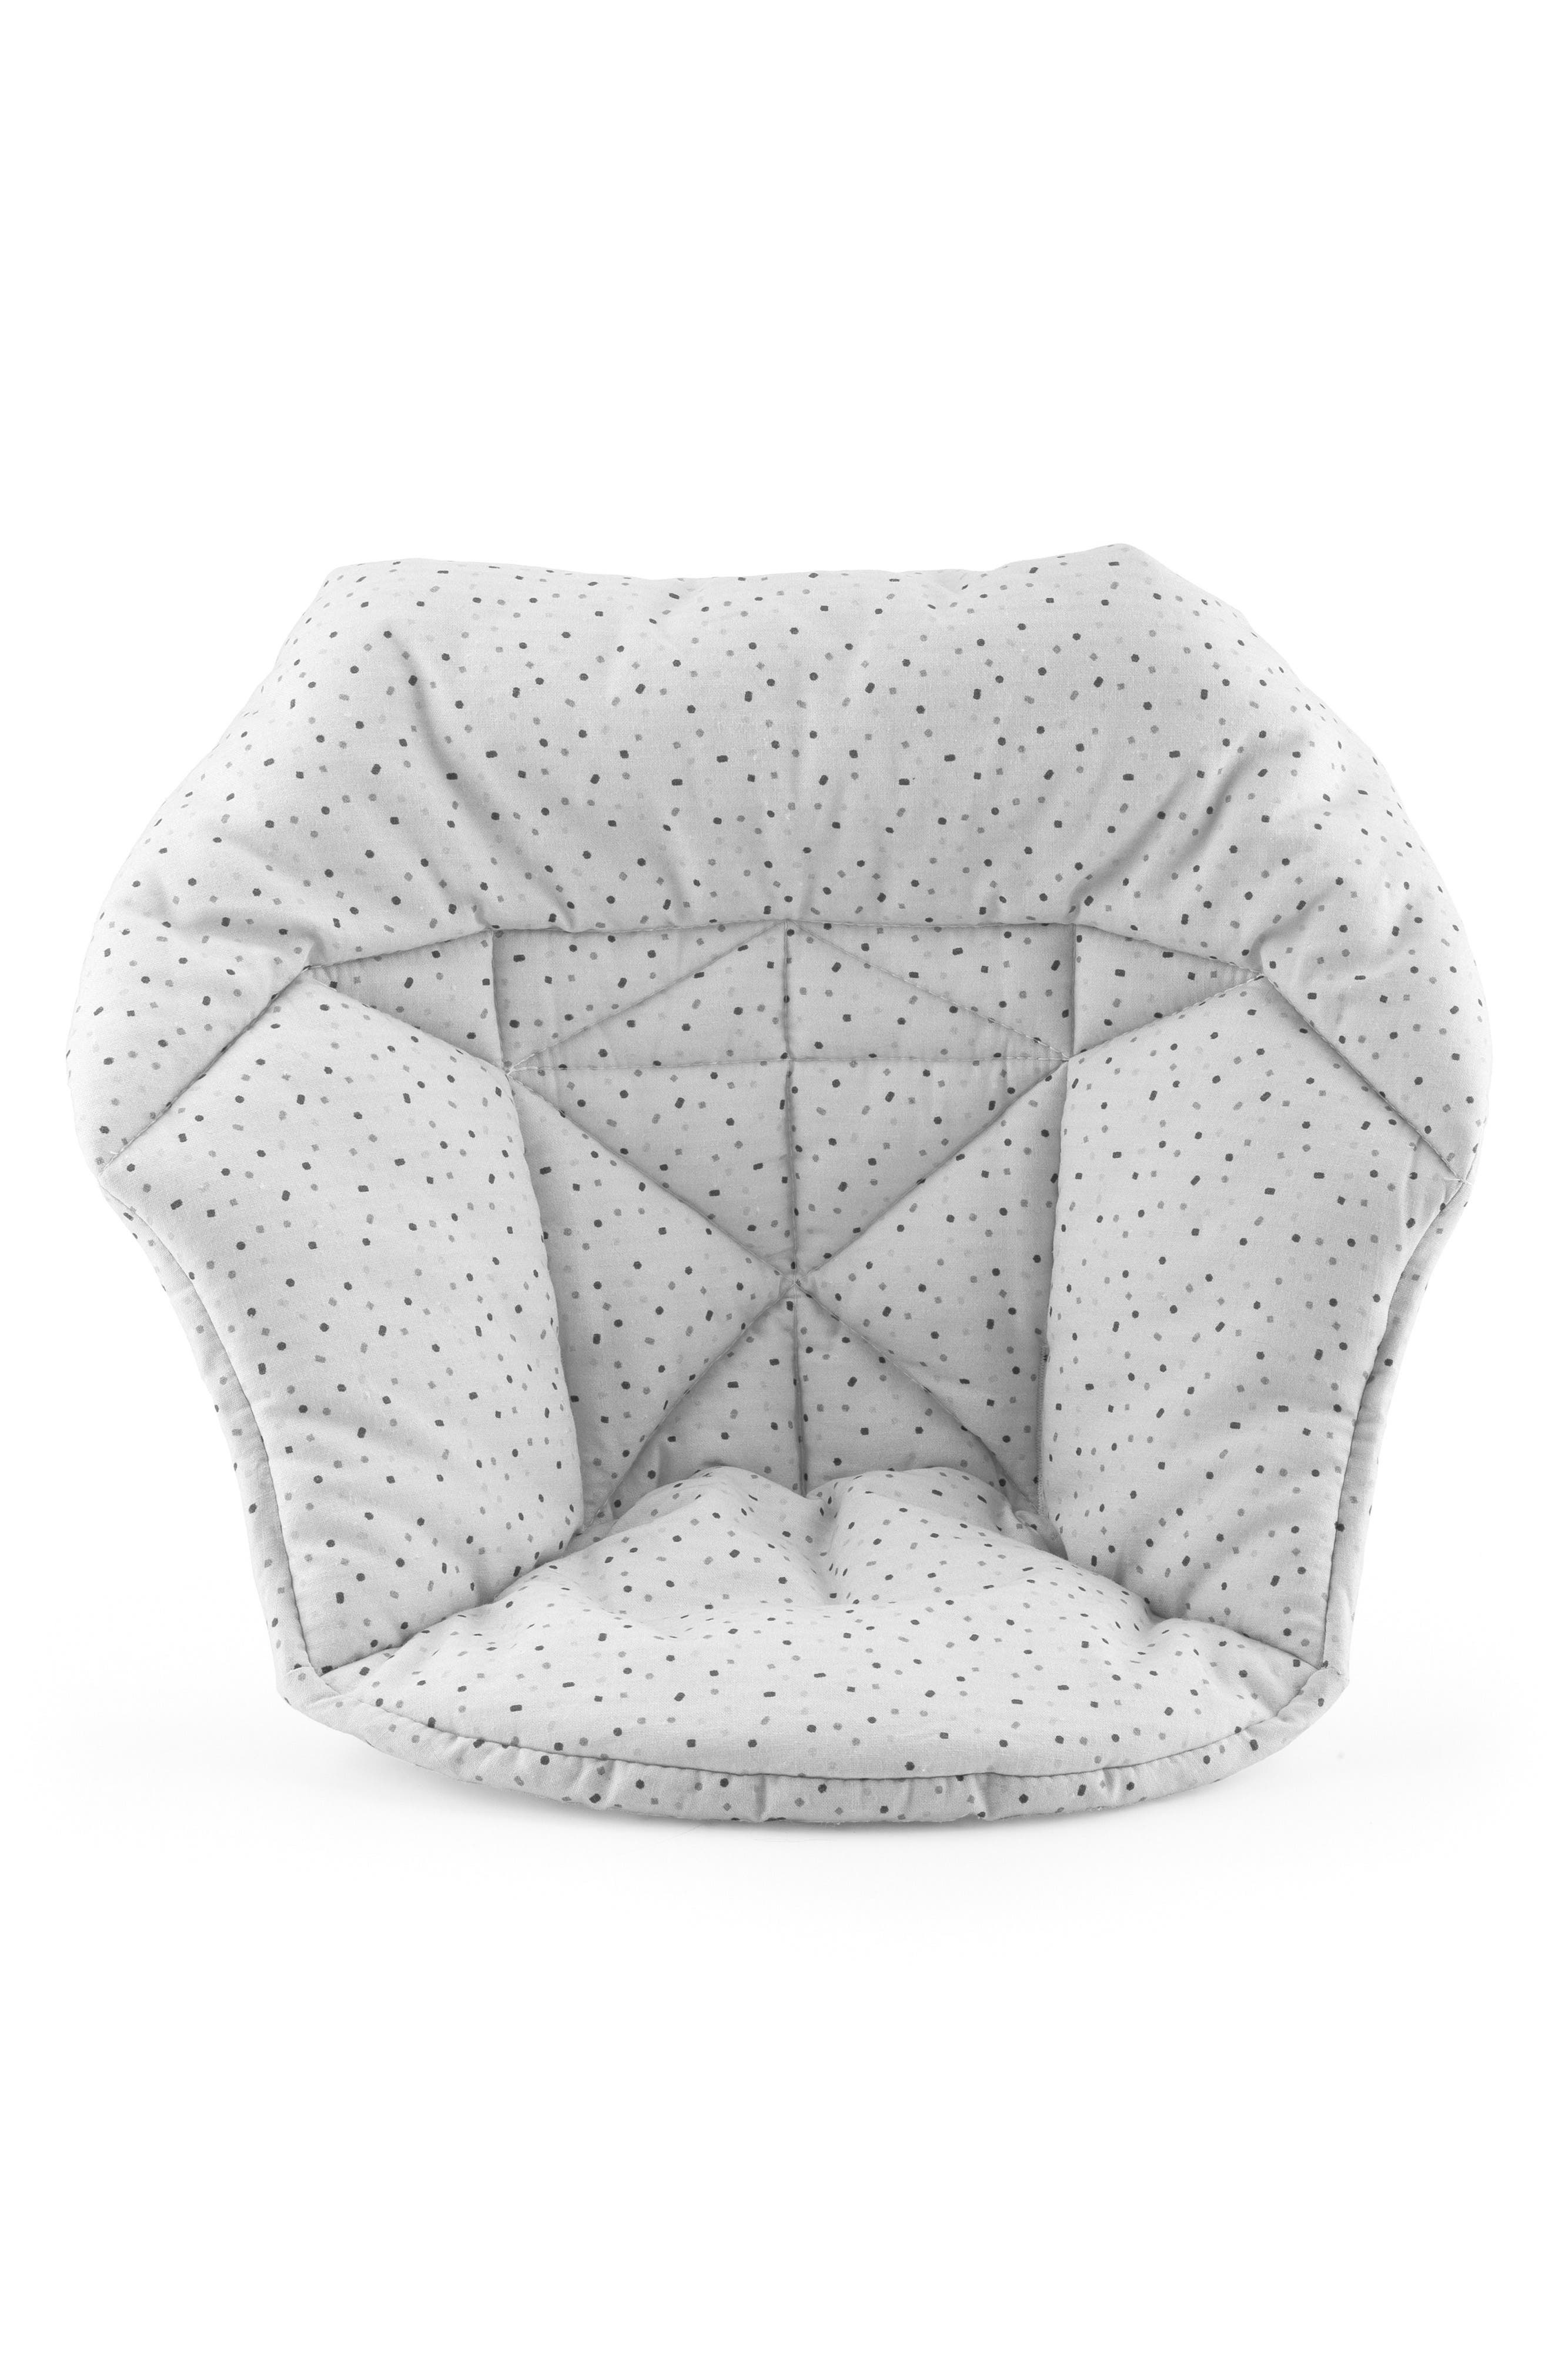 Alternate Image 2  - Stokke® Seat Cushion for Tripp Trapp® Highchair